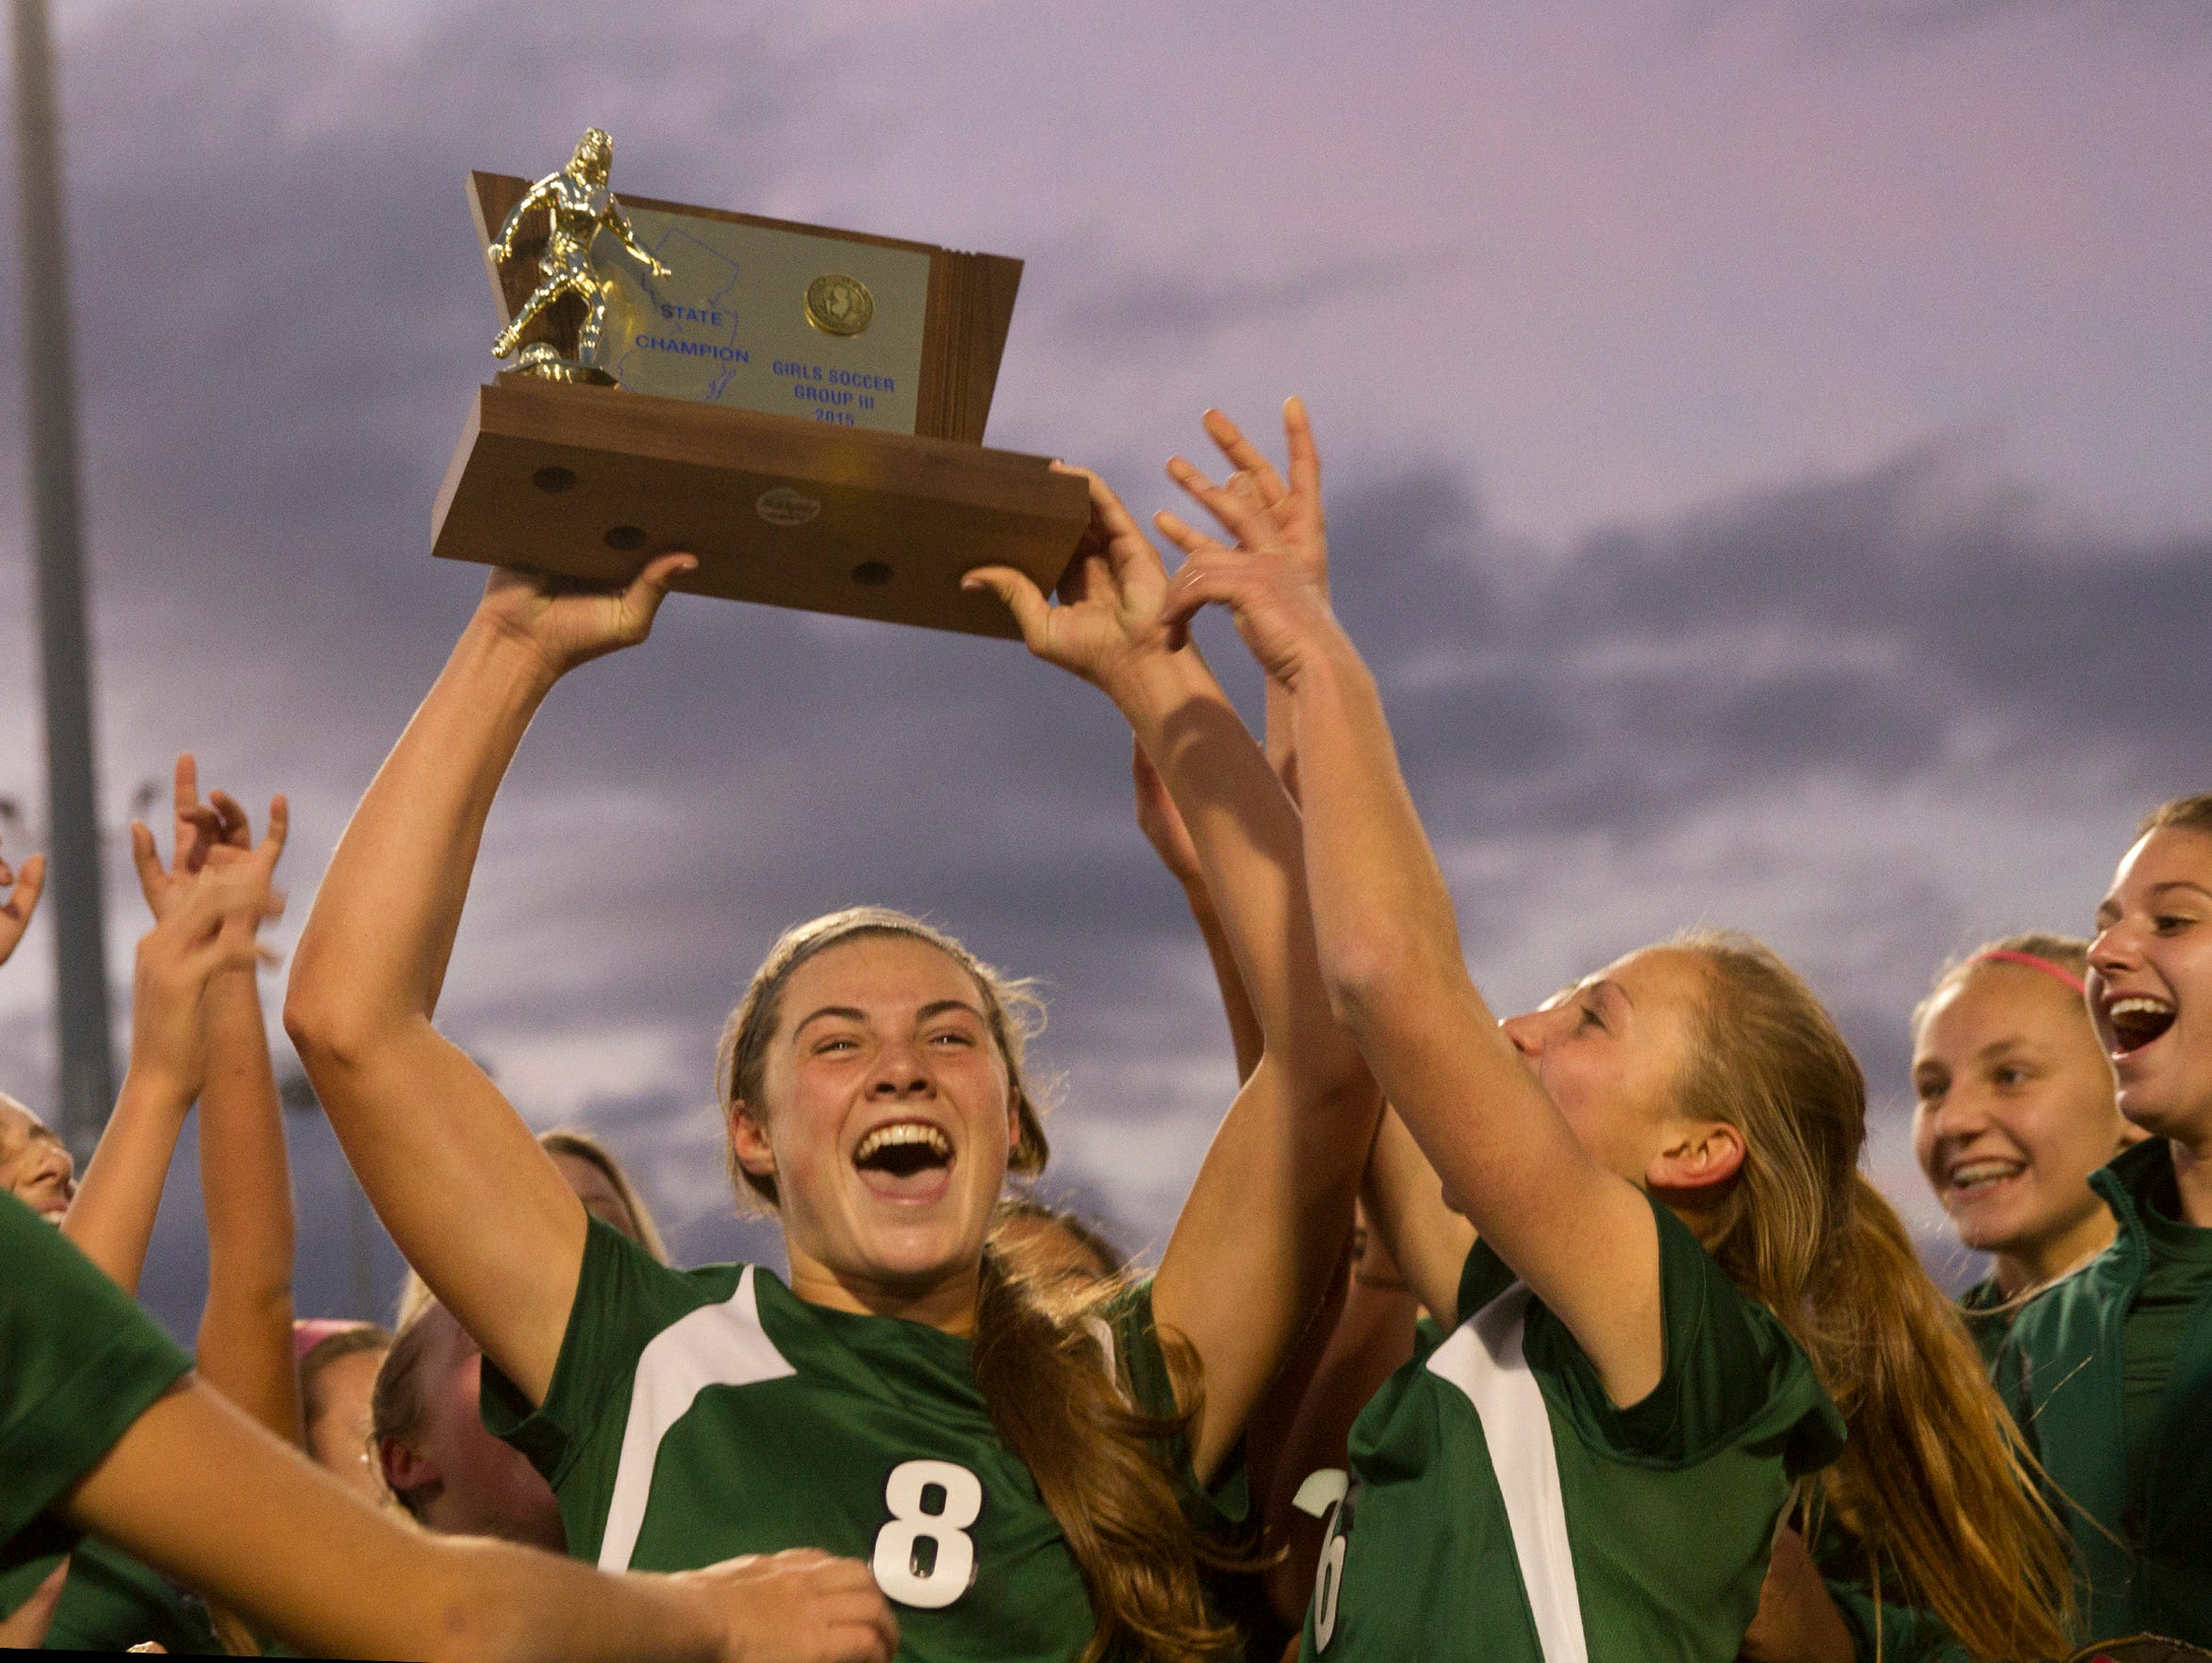 Colts Neck's Amanda Visco waves the championship trophy at fans in the stand after Colts Neck defeated Northern Highlands 1-0. Colt Necks Girls Soccer vs Northern Highlands in NJSIAA State Group III Championship at Kean University on November 21, 2015 in Union, NJ.